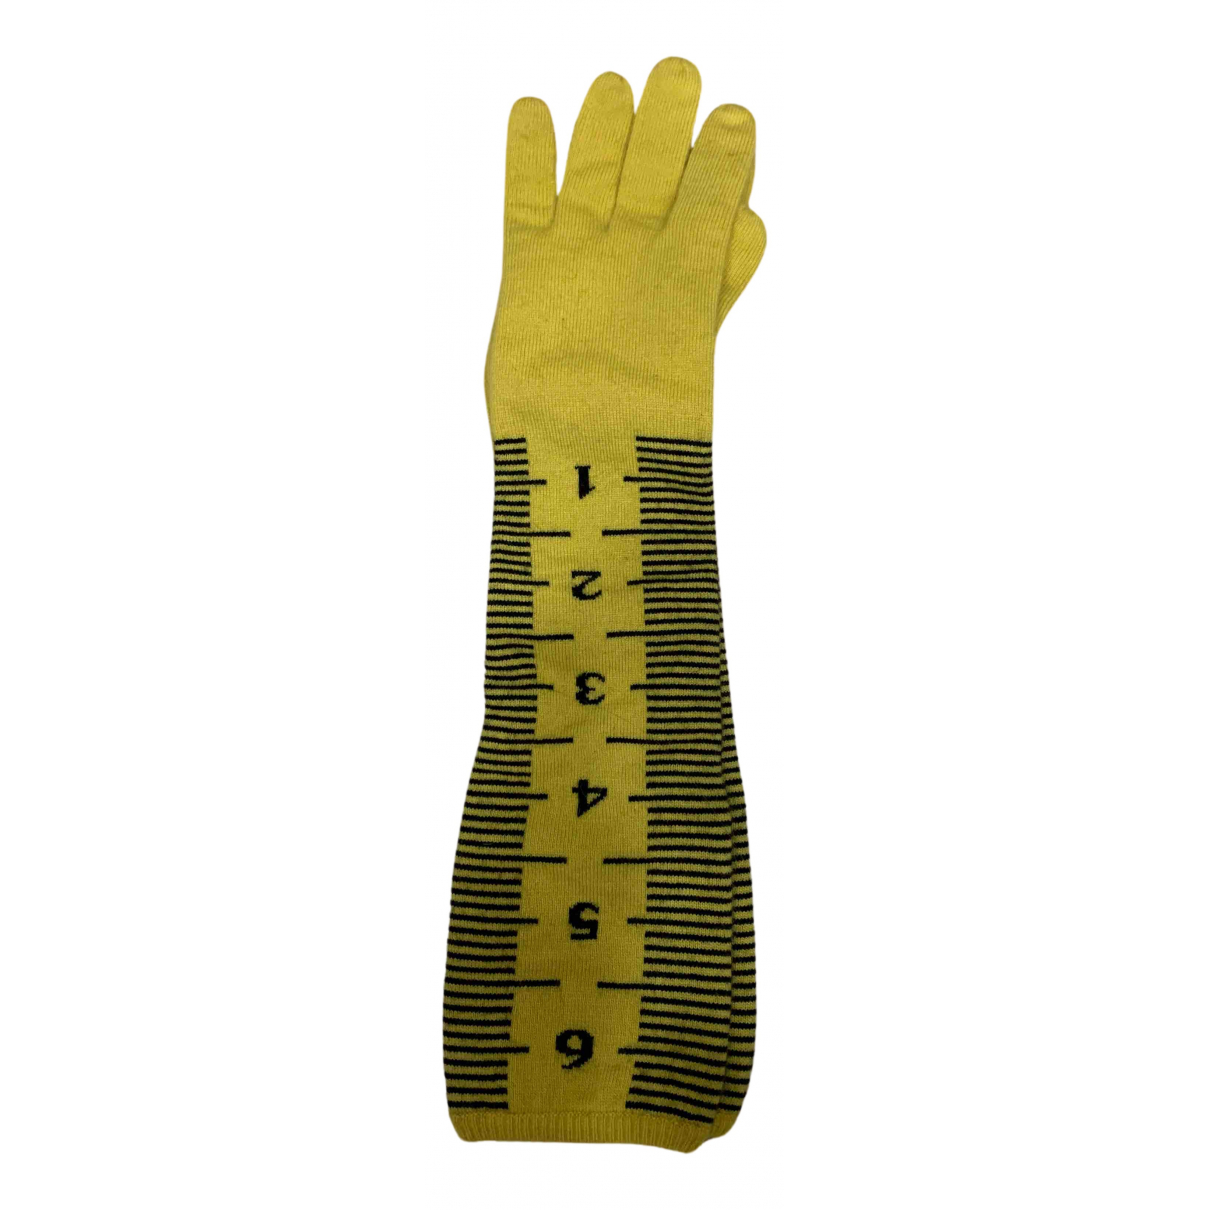 Moschino N Yellow Cashmere Gloves for Women S International